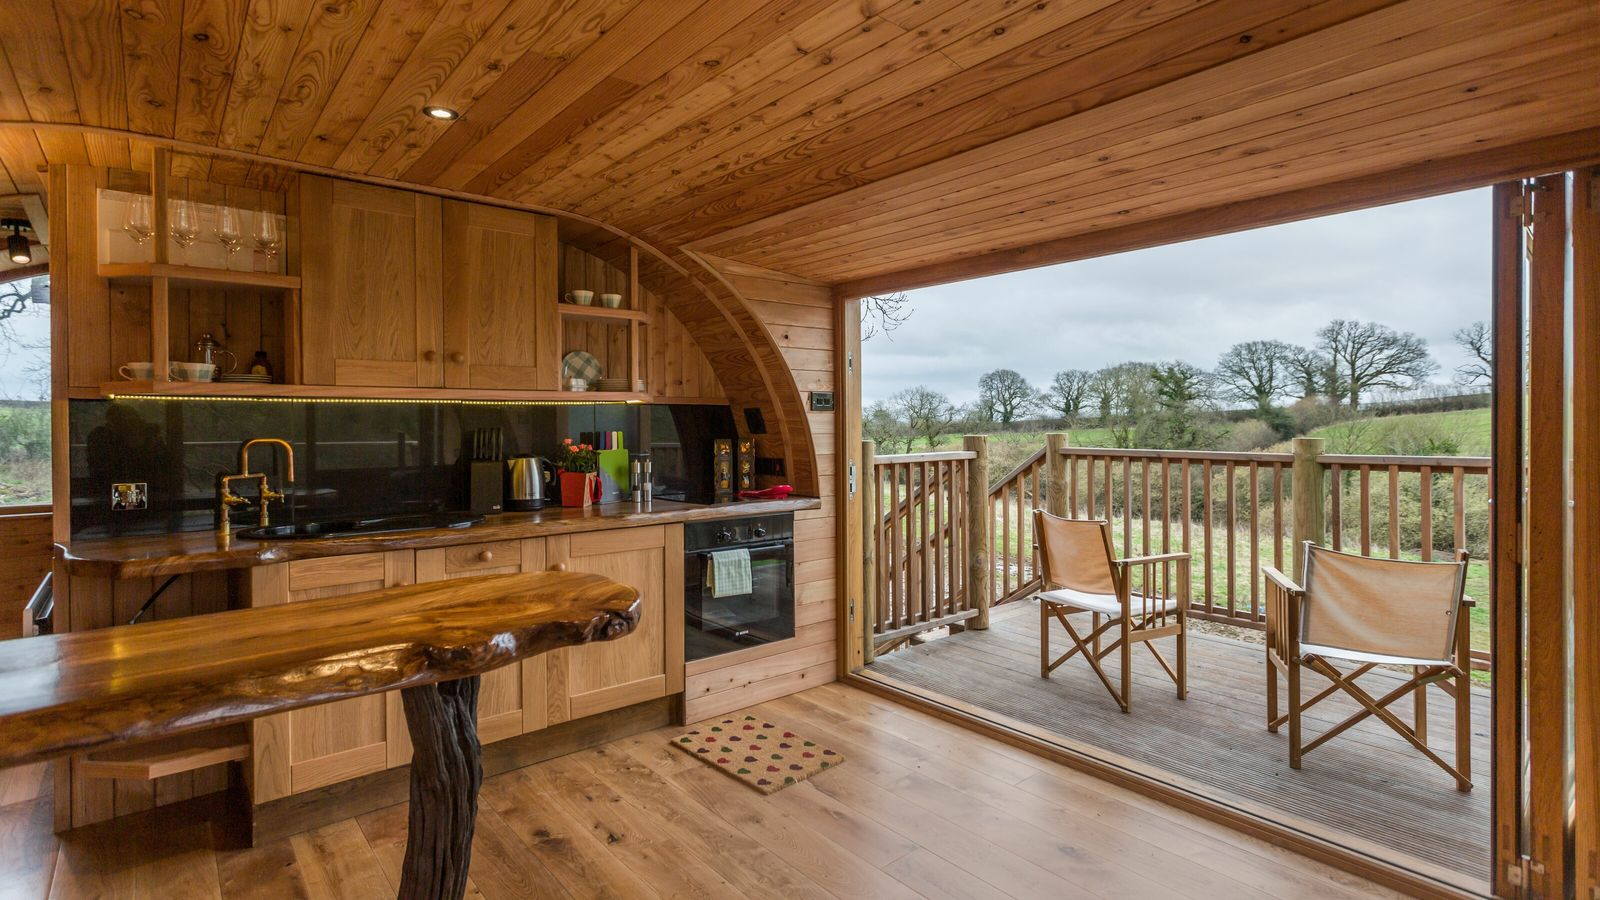 Cheriton Treehouse is a leafy, luxurious hideaway wrapped around an oak tree in the Somerset countryside.